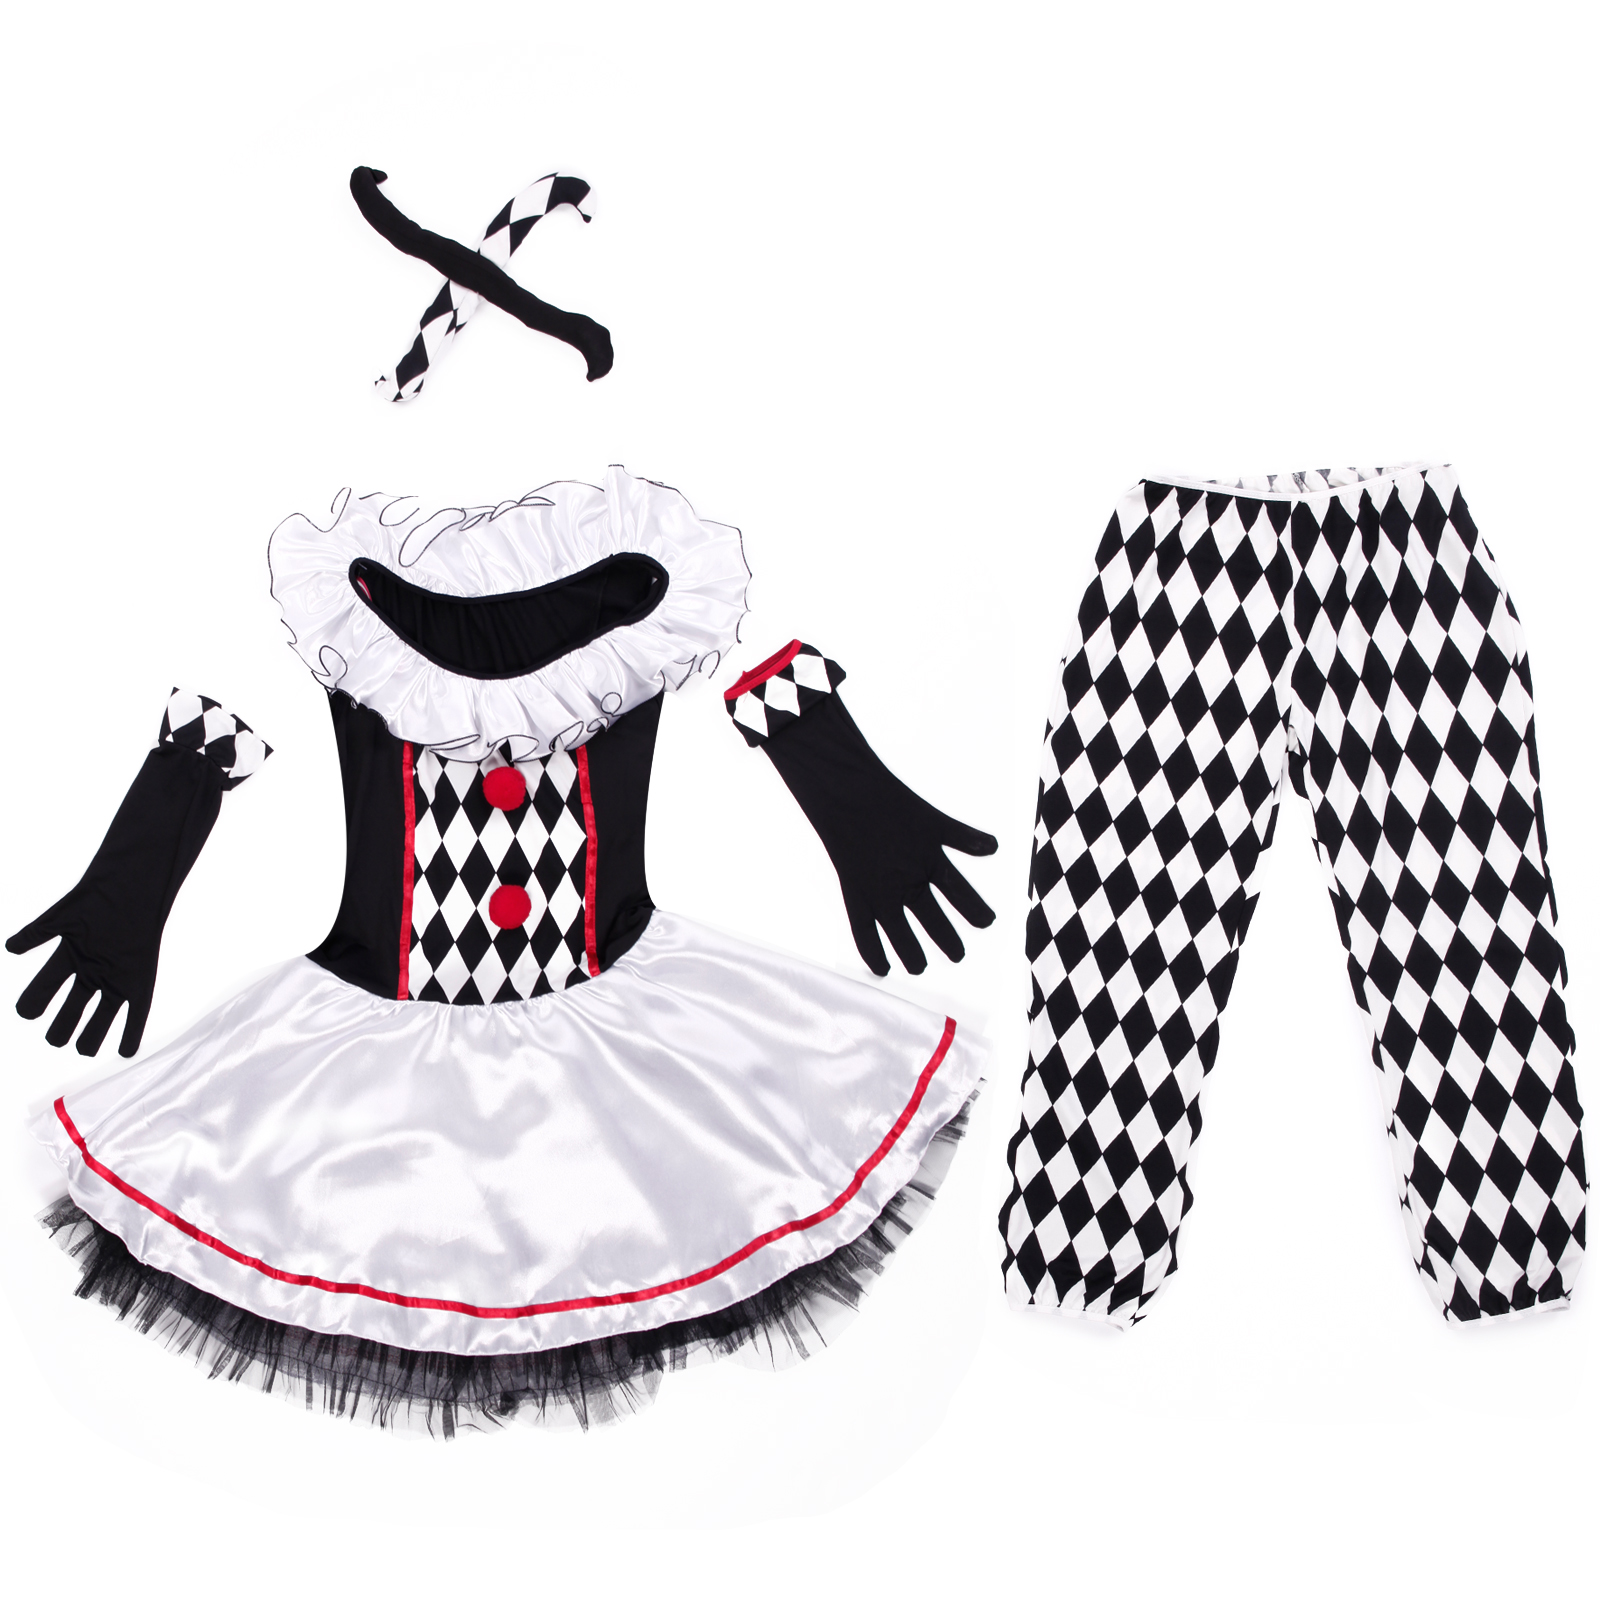 pierrot harlekin clown schwarz wei damen kost m karneval fasching circus outfit ebay. Black Bedroom Furniture Sets. Home Design Ideas